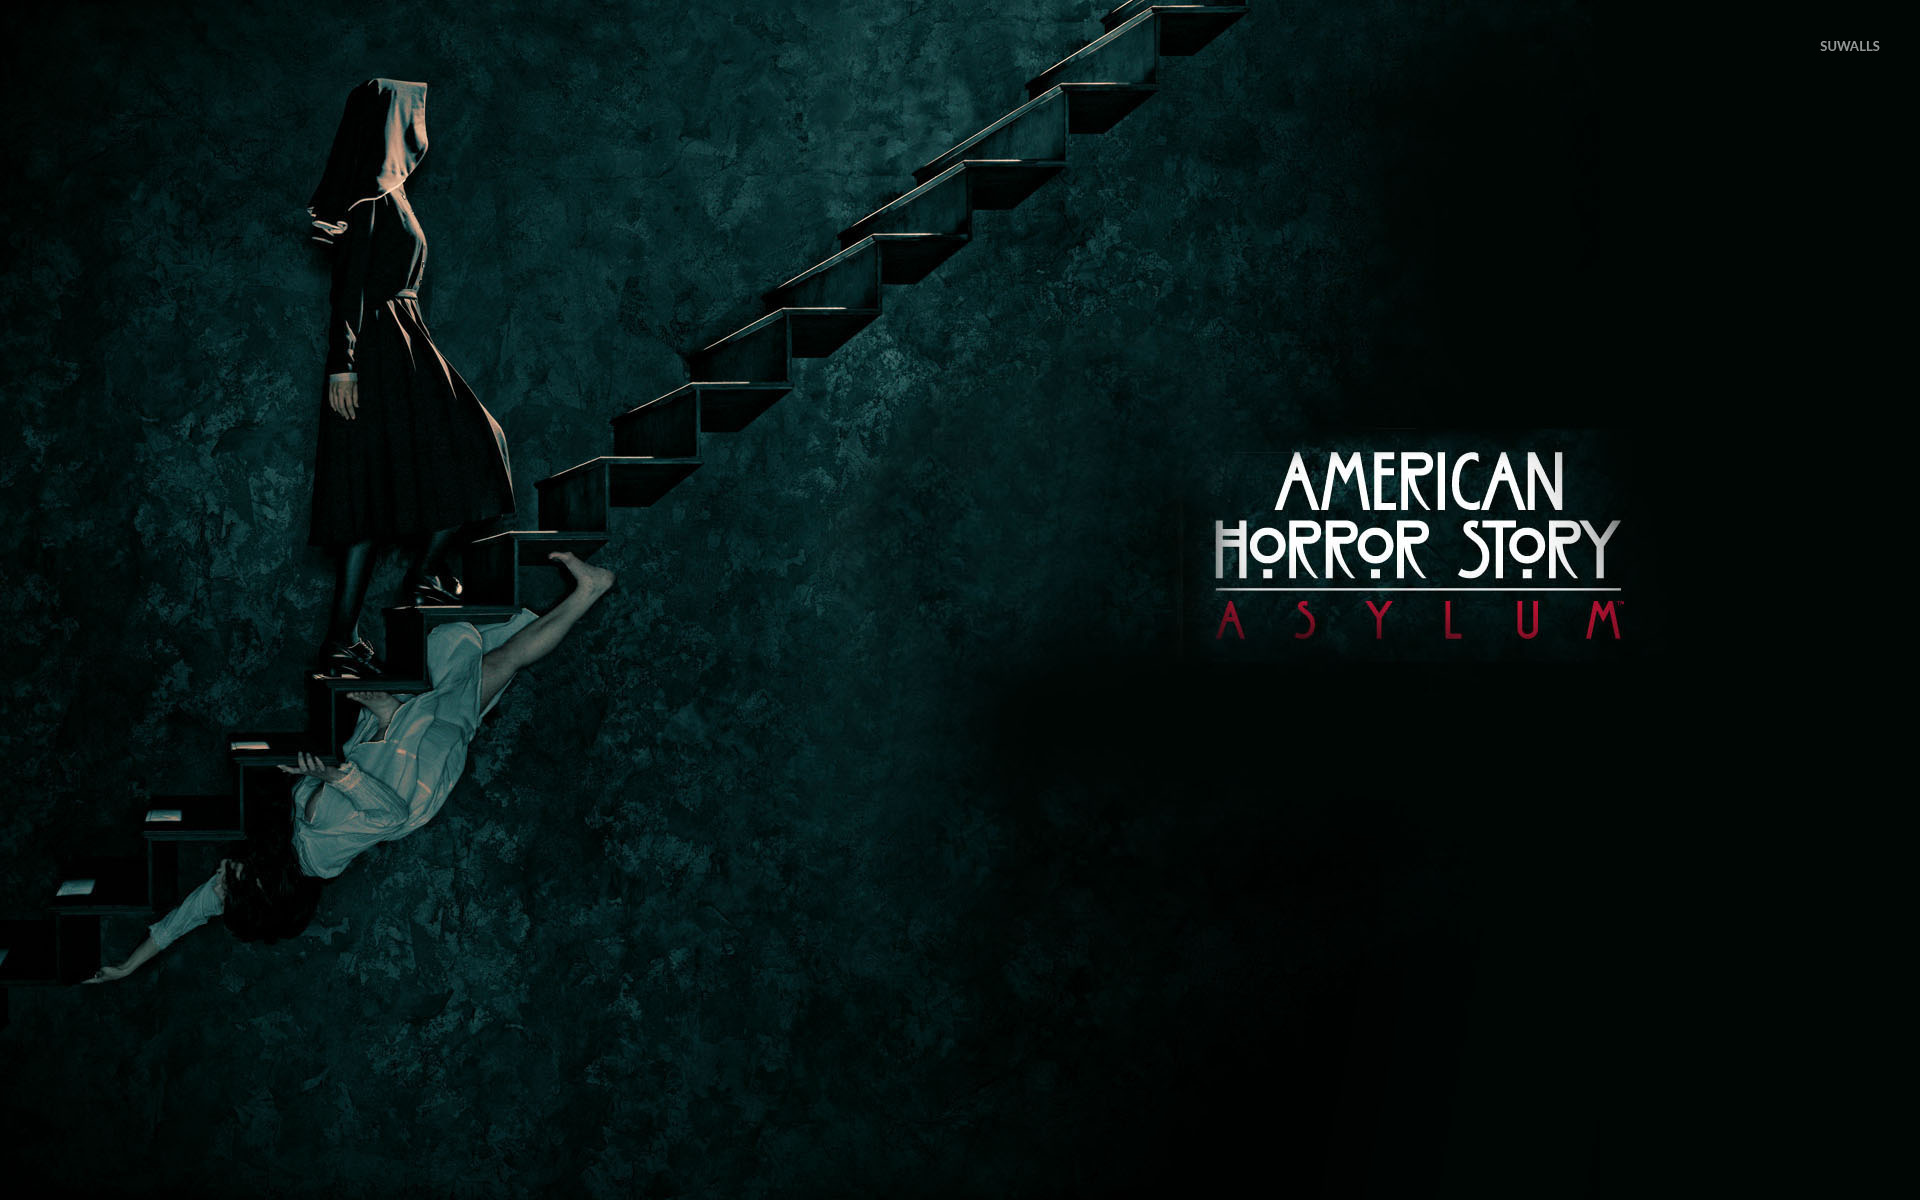 American horror story asylum 2 wallpaper tv show wallpapers 27962 - American horror story wallpaper ...